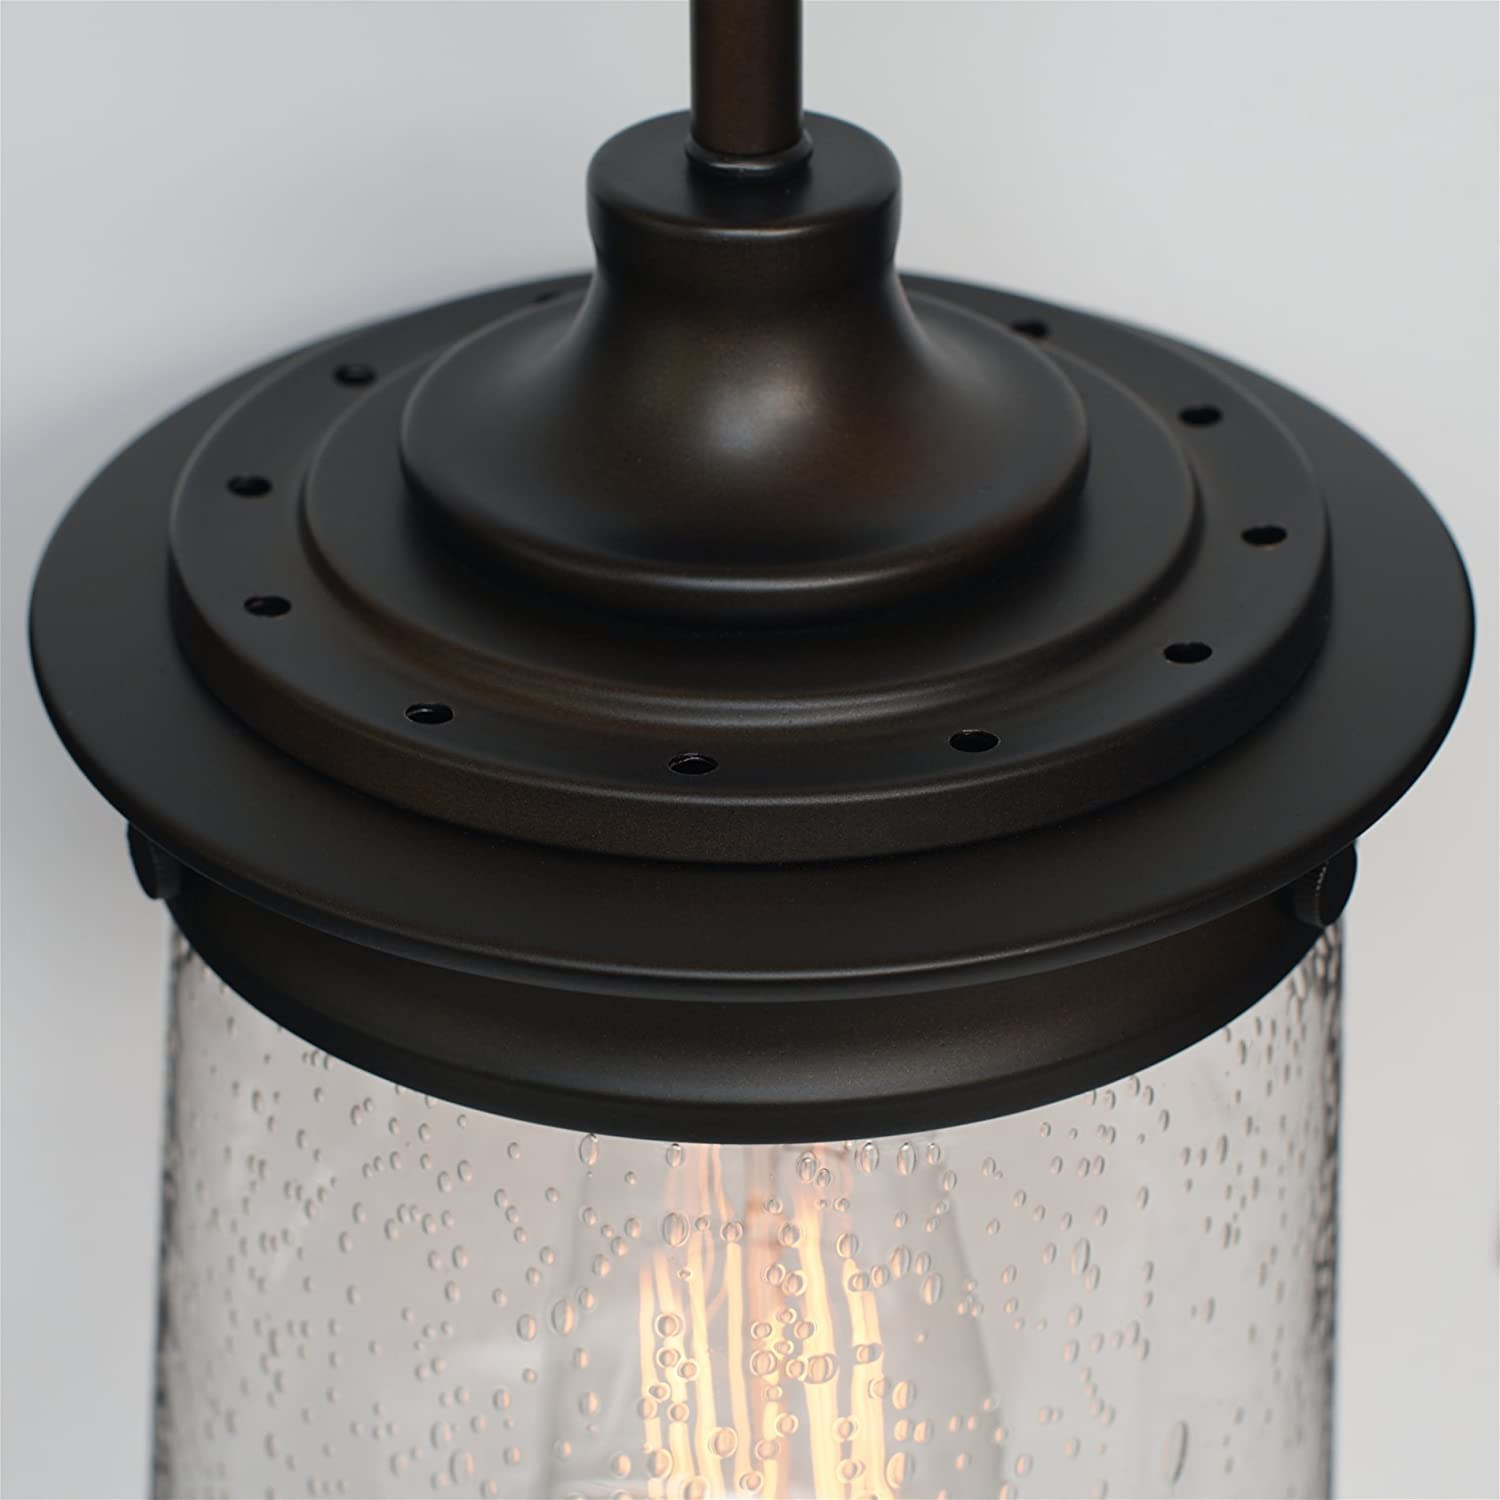 Kira Home Mason 10.5 Industrial Pendant Light, Seeded Glass Shade Oil-Rubbed Bronze Finish